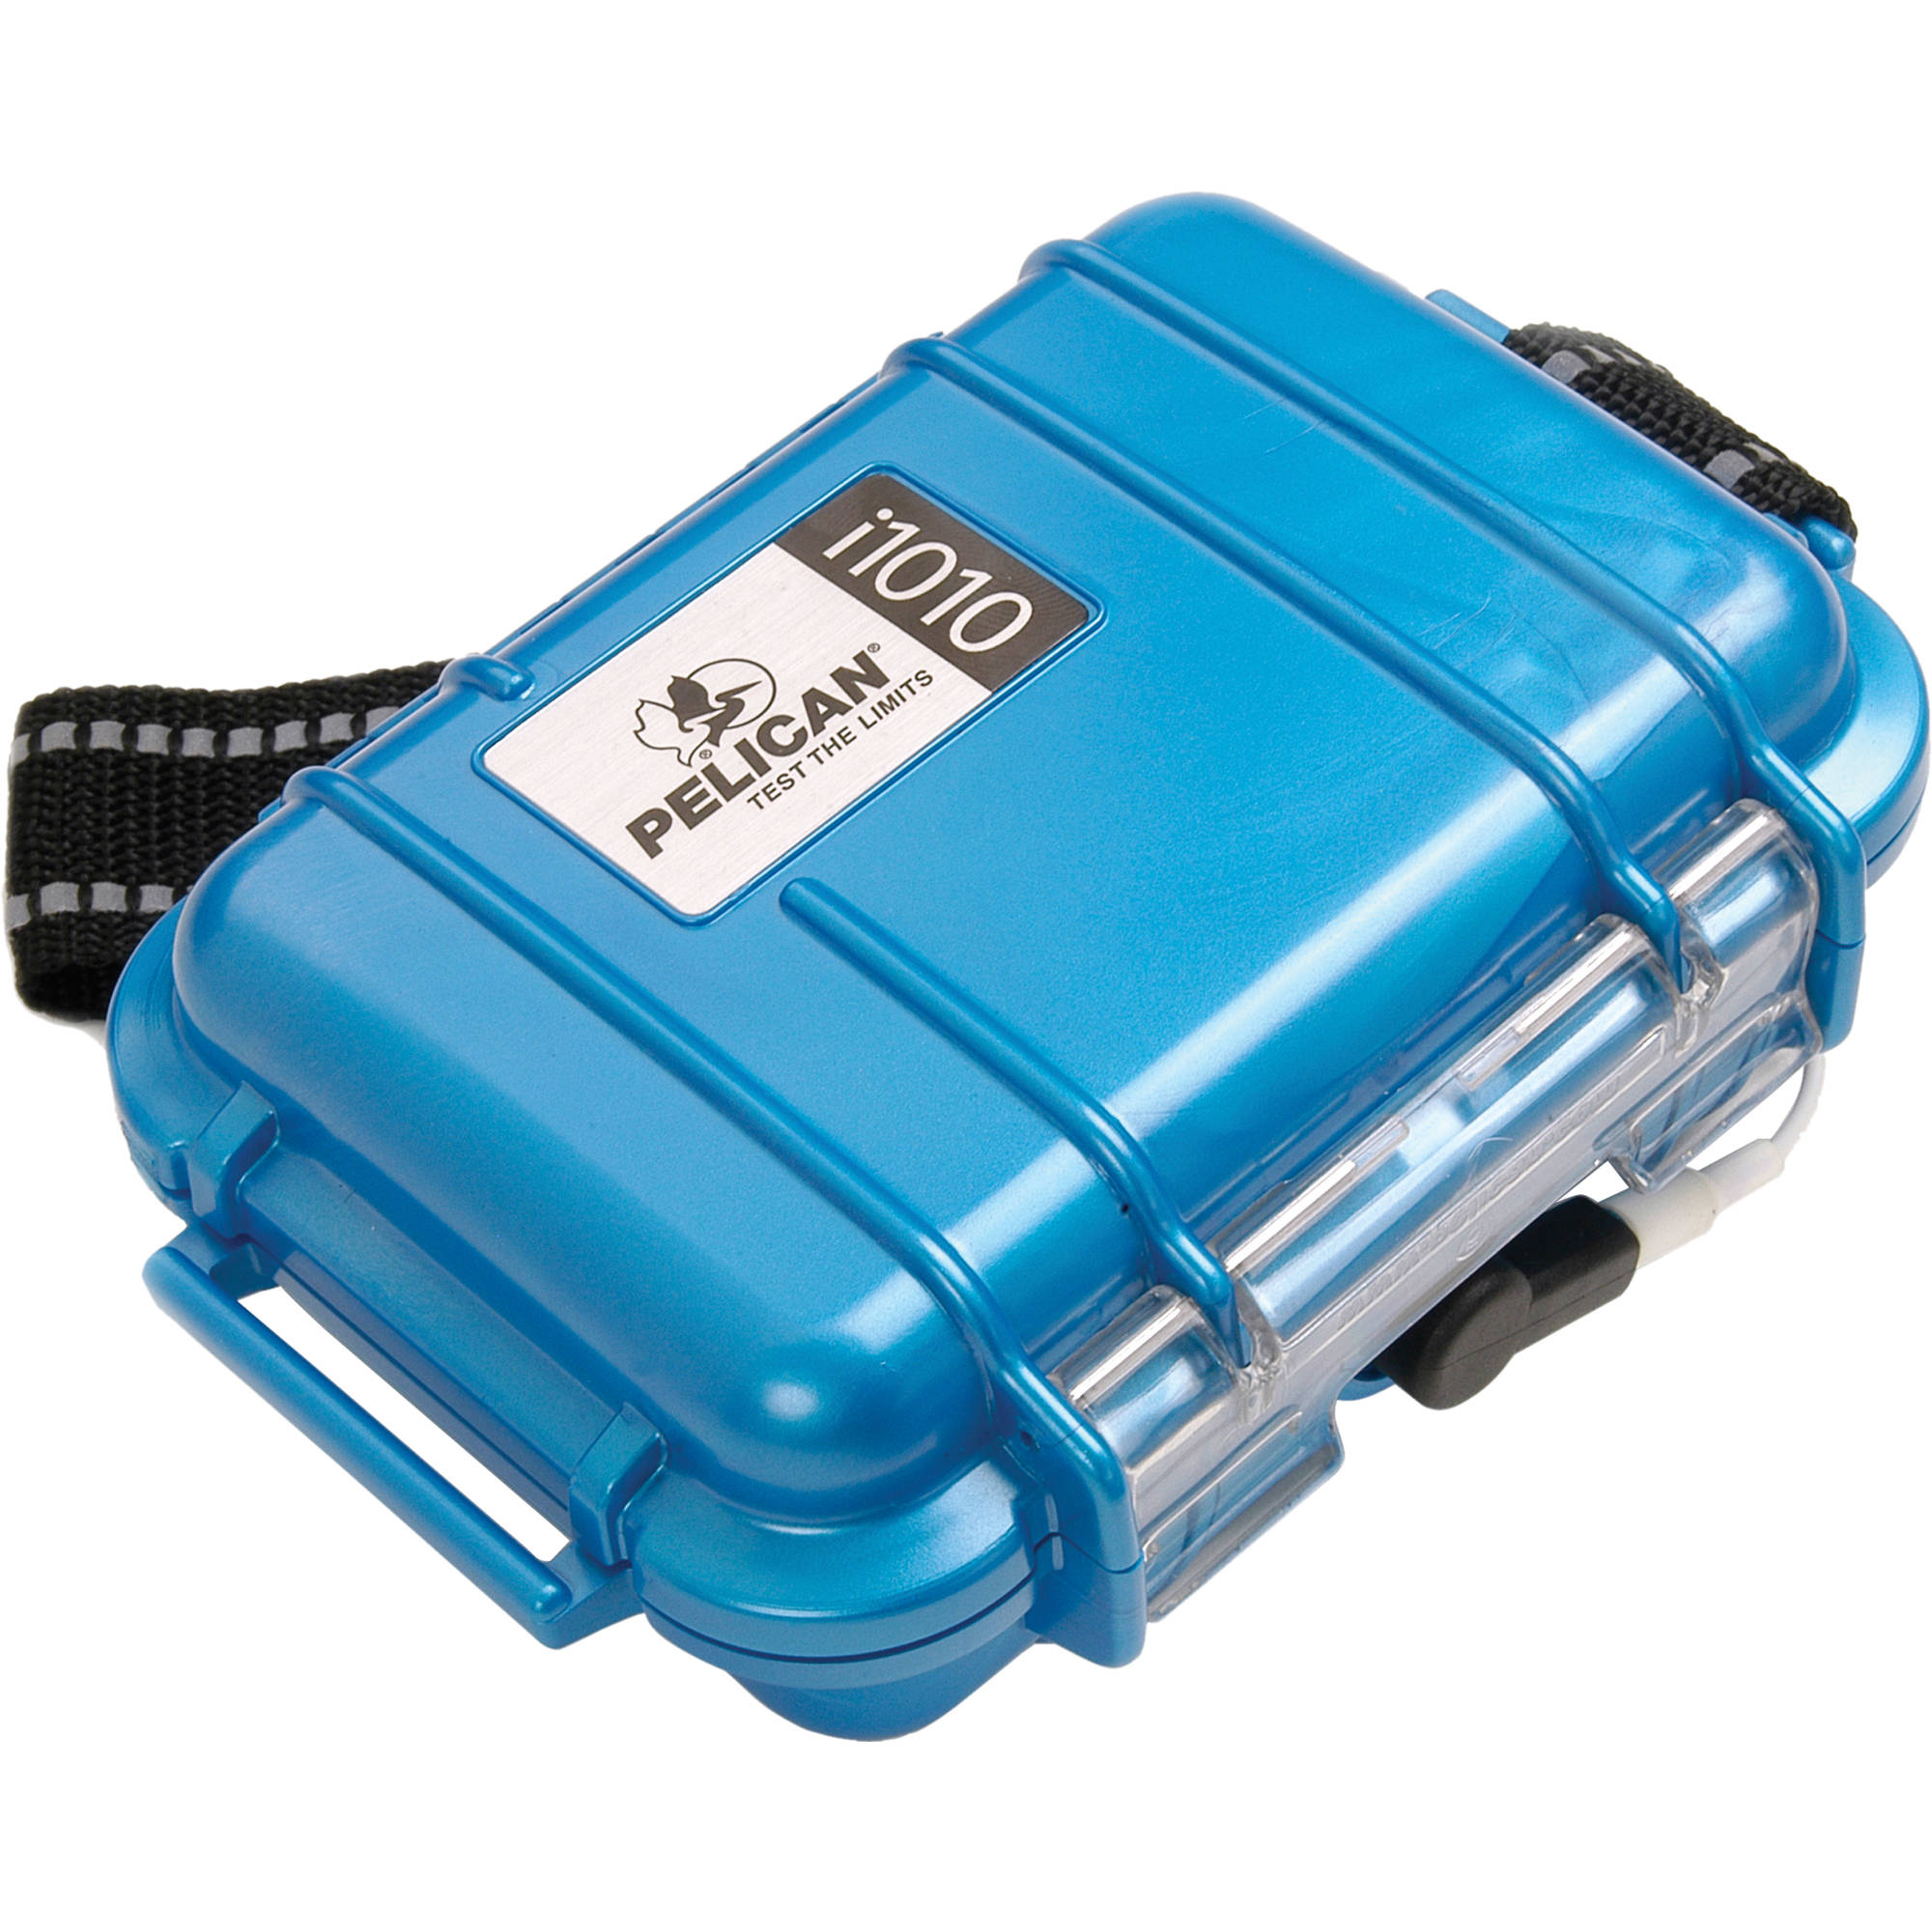 ue waterproof how to know when charged